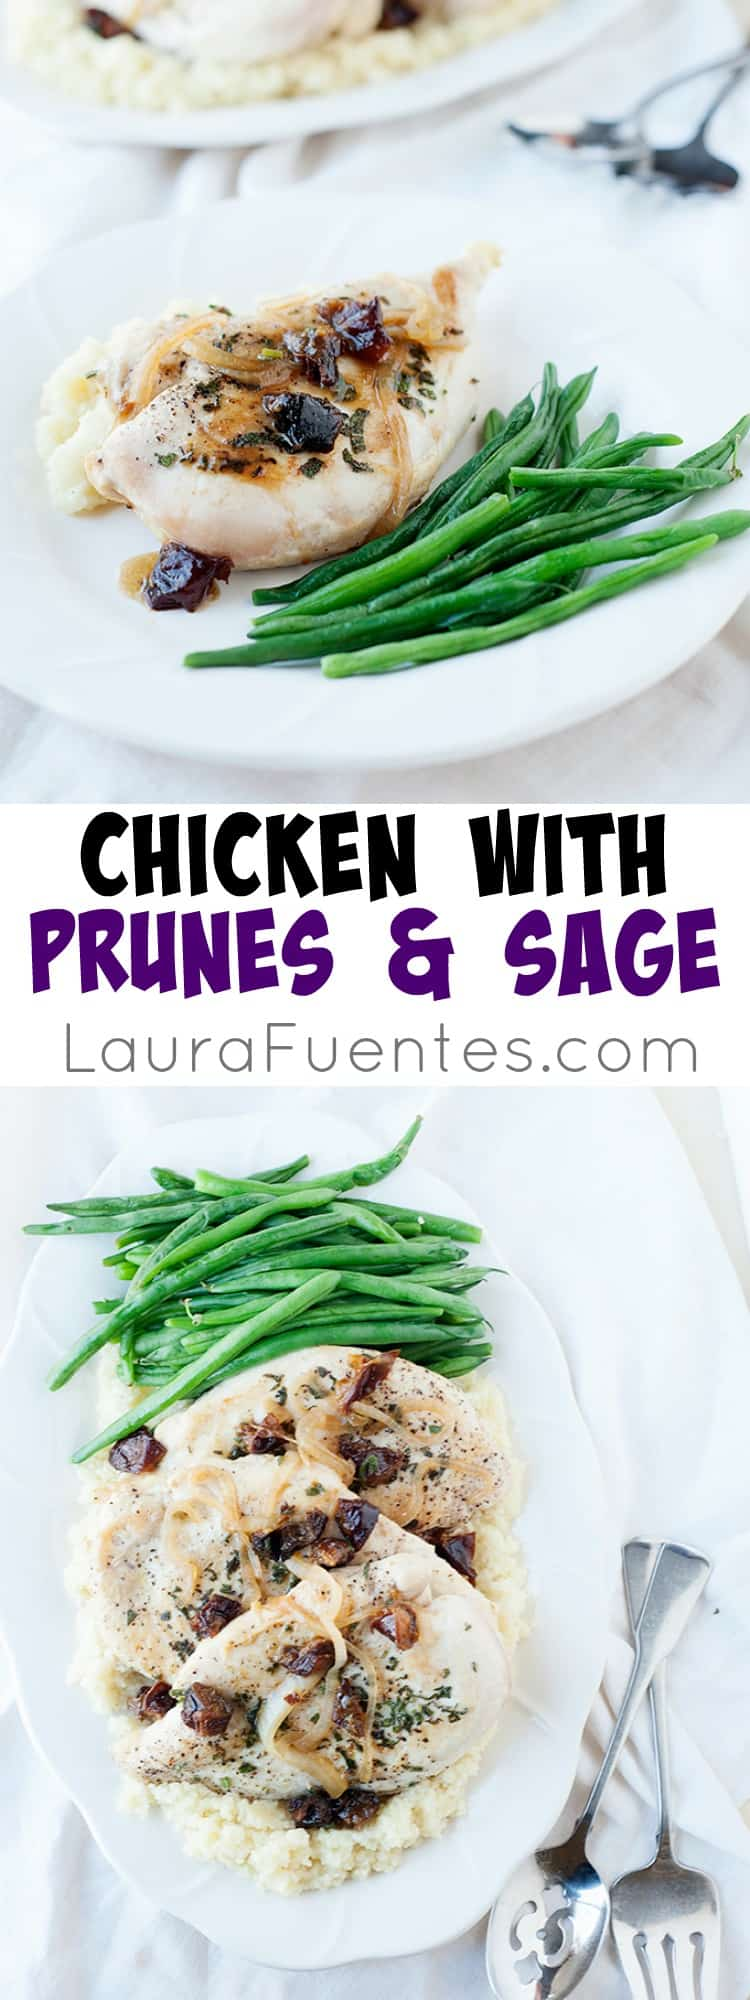 Chicken with Prunes and Sage- Savory dinner for two that is healthy, easy and delicious.